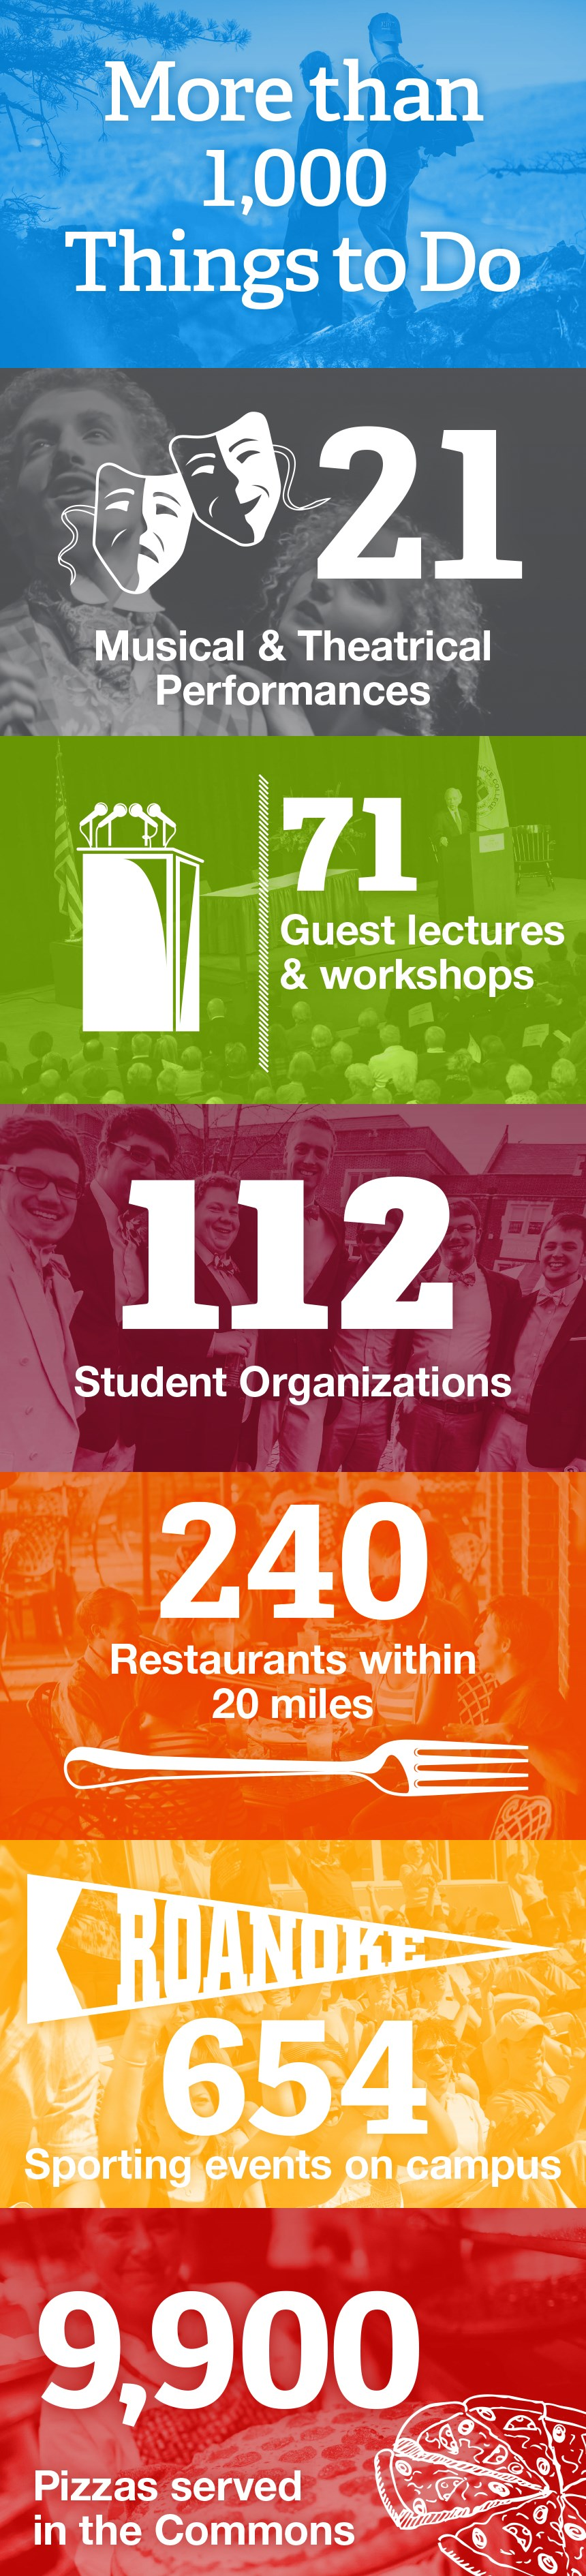 More than 1,000 things to do, 21 musical and theatrical performances, 71 guest lectures and workshops, 112 student organizations, 240 restaurants within 20 miles, 654 sporting events on campus, 9,900 pizzas served in the commons